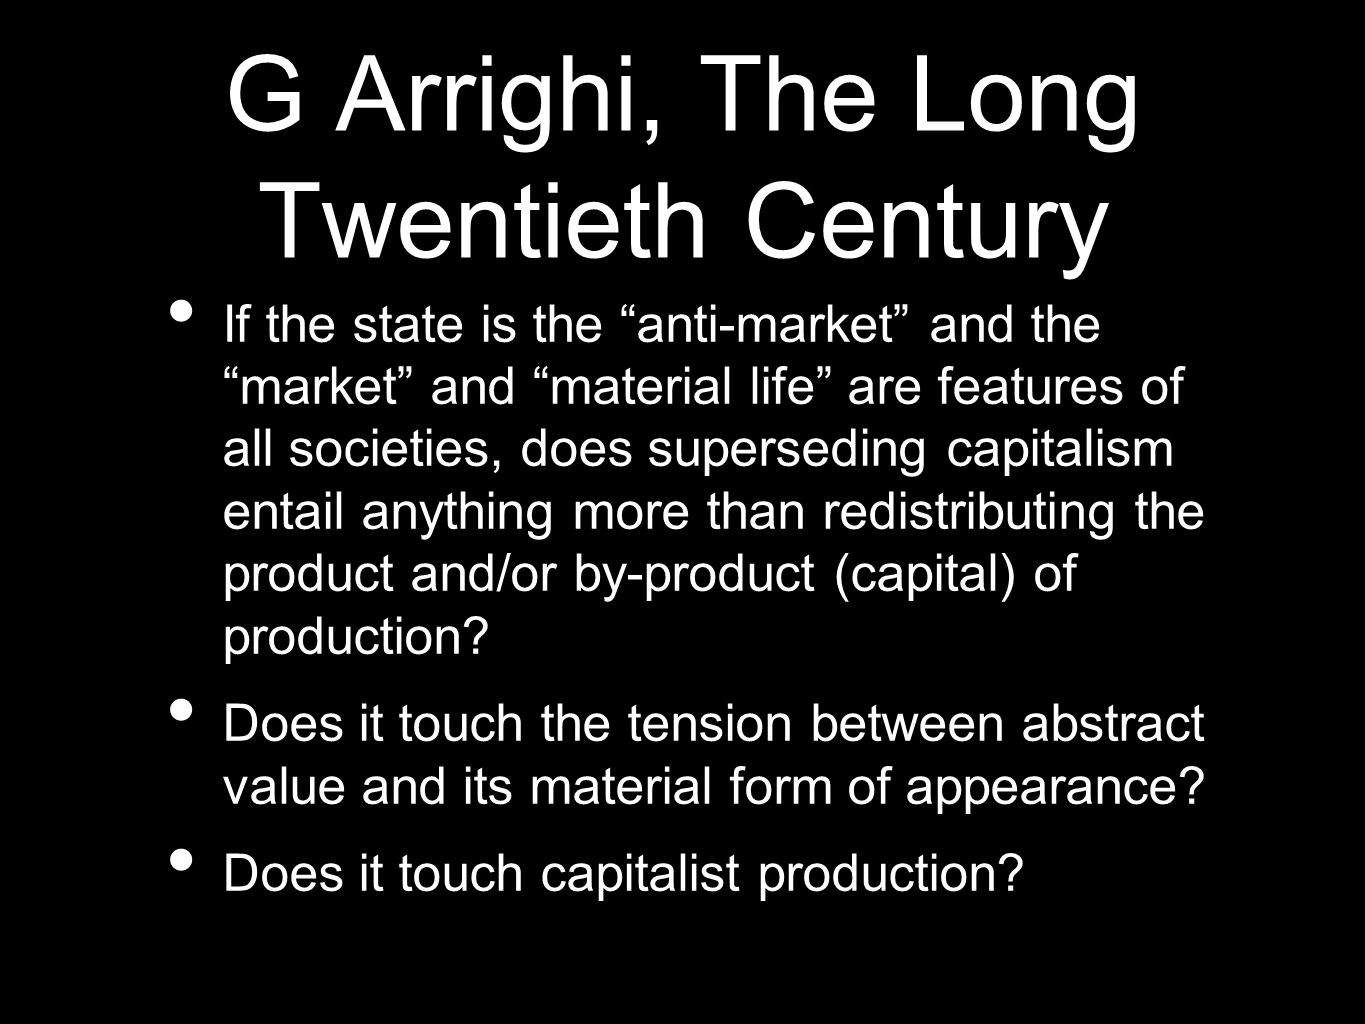 G Arrighi, The Long Twentieth Century If the state is the anti-market and the market and material life are features of all societies, does superseding capitalism entail anything more than redistributing the product and/or by-product (capital) of production.